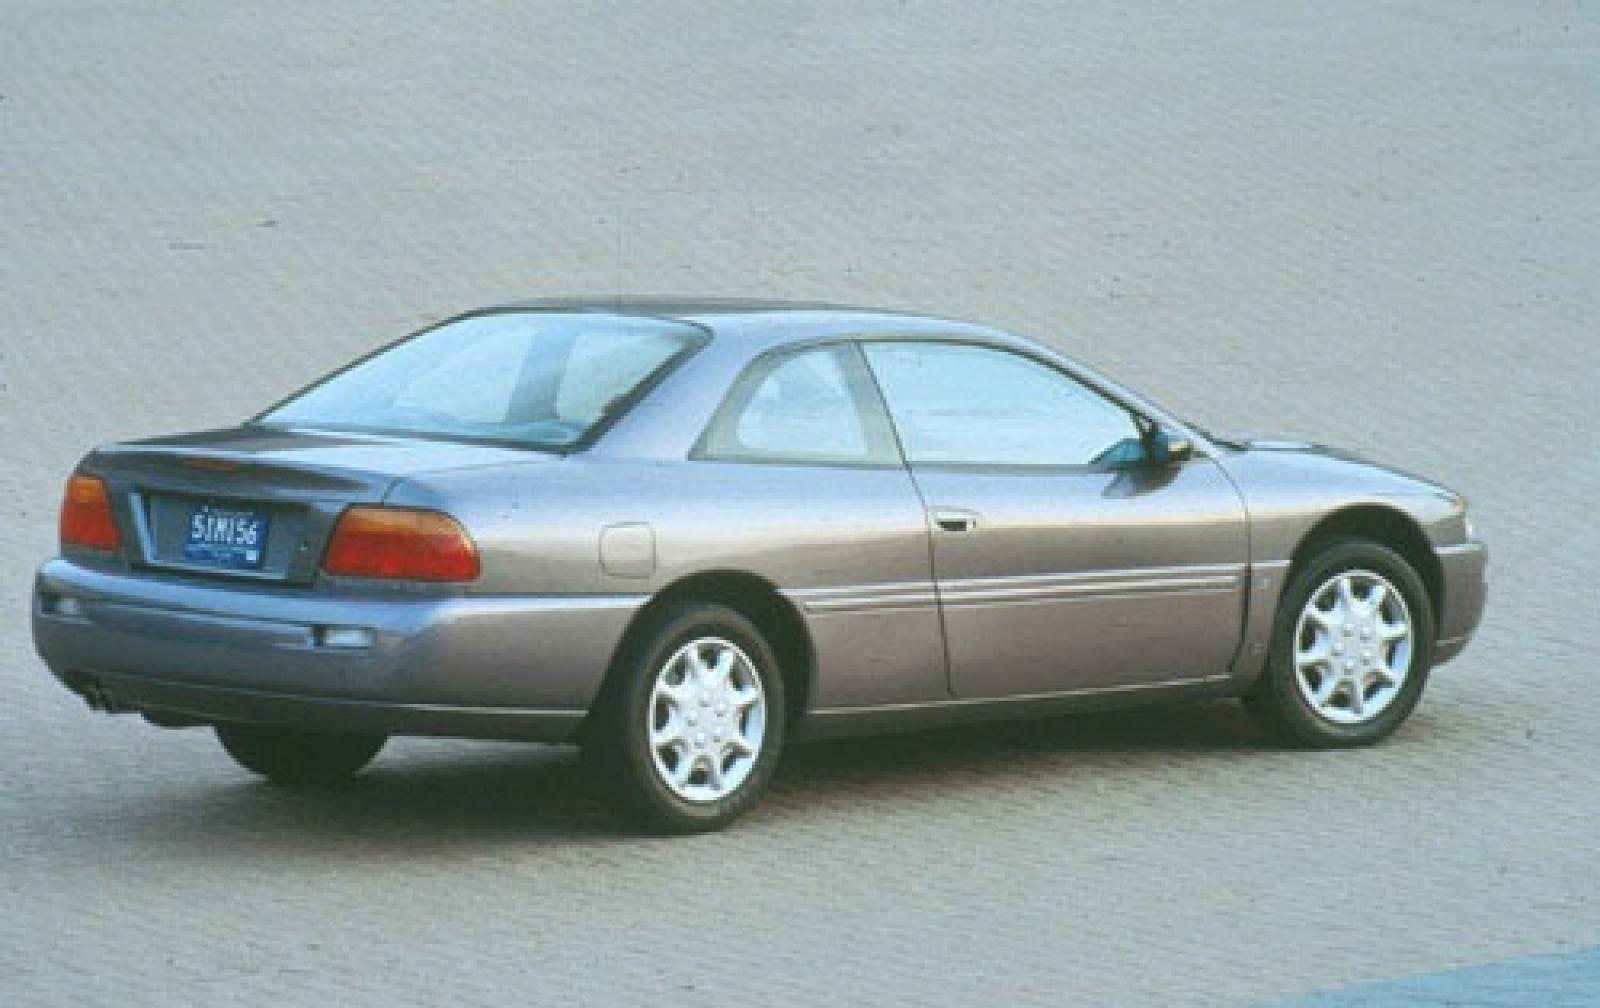 1997 chrysler sebring information and photos zombiedrive. Cars Review. Best American Auto & Cars Review